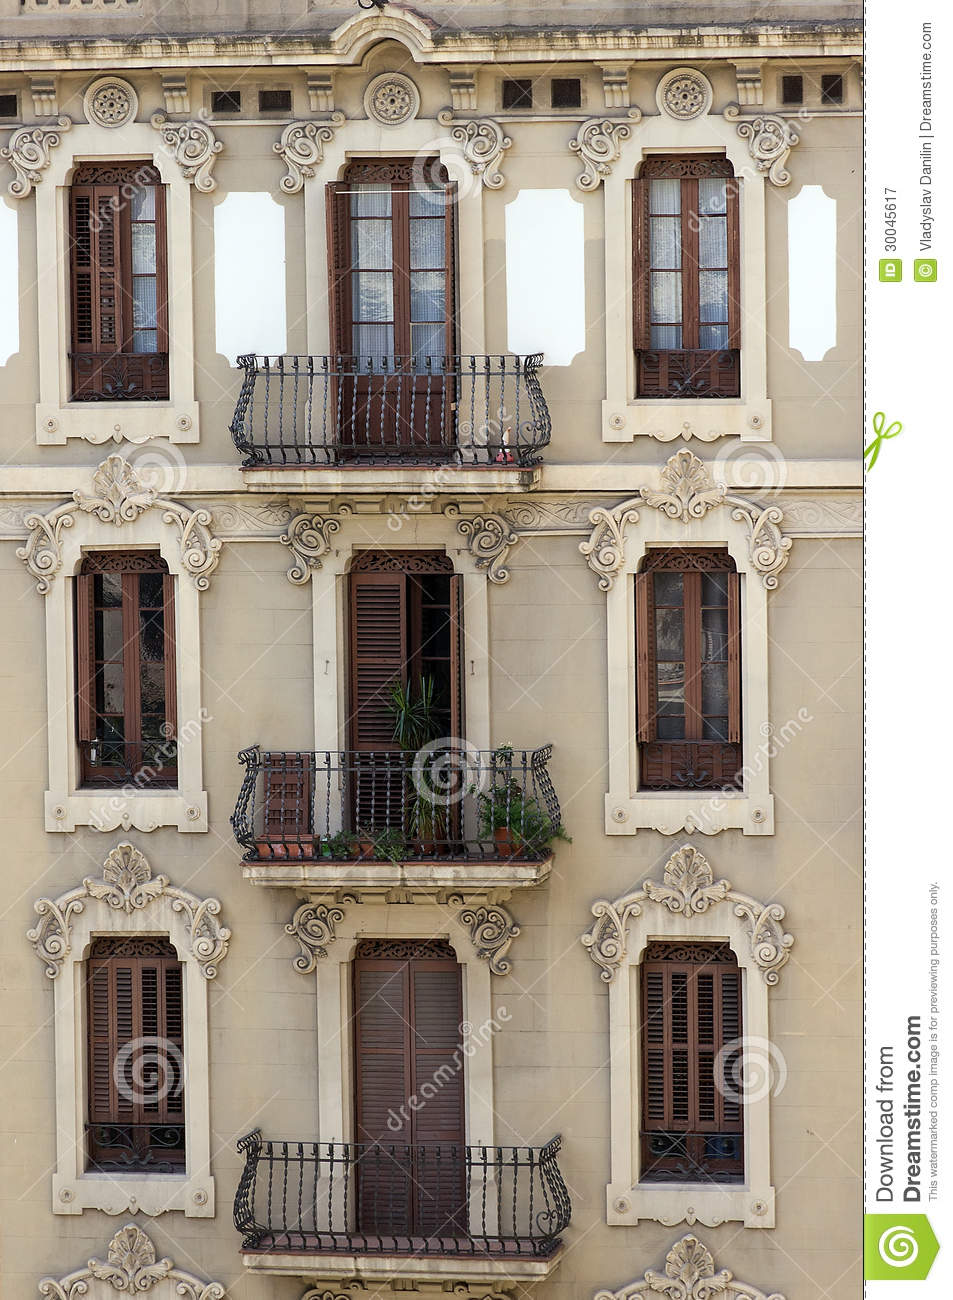 Maison de fa ade photographie stock libre de droits for Balcon de maison